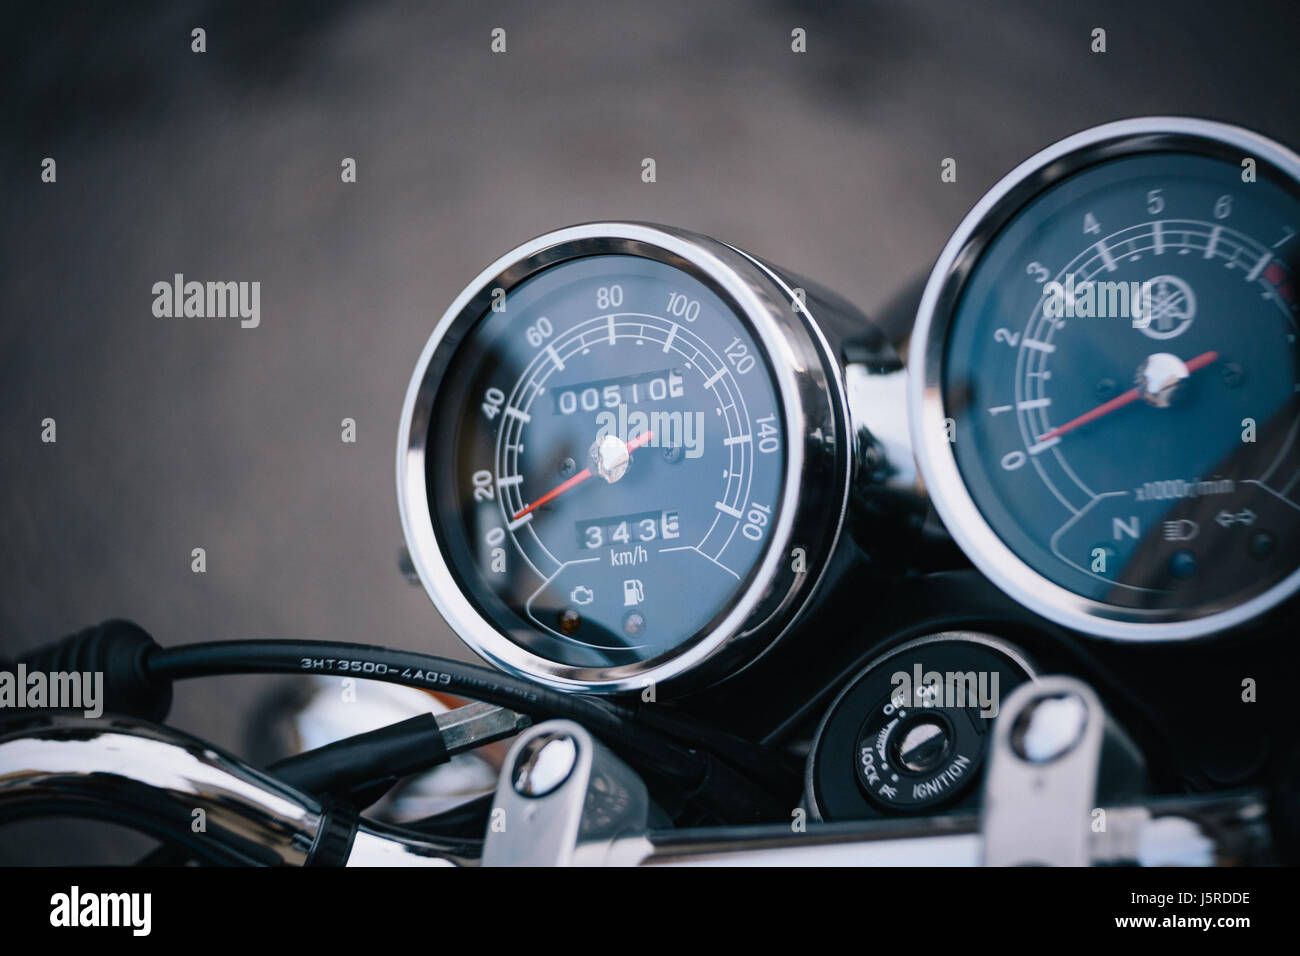 Motorbike speed-o-meter - Stock Image